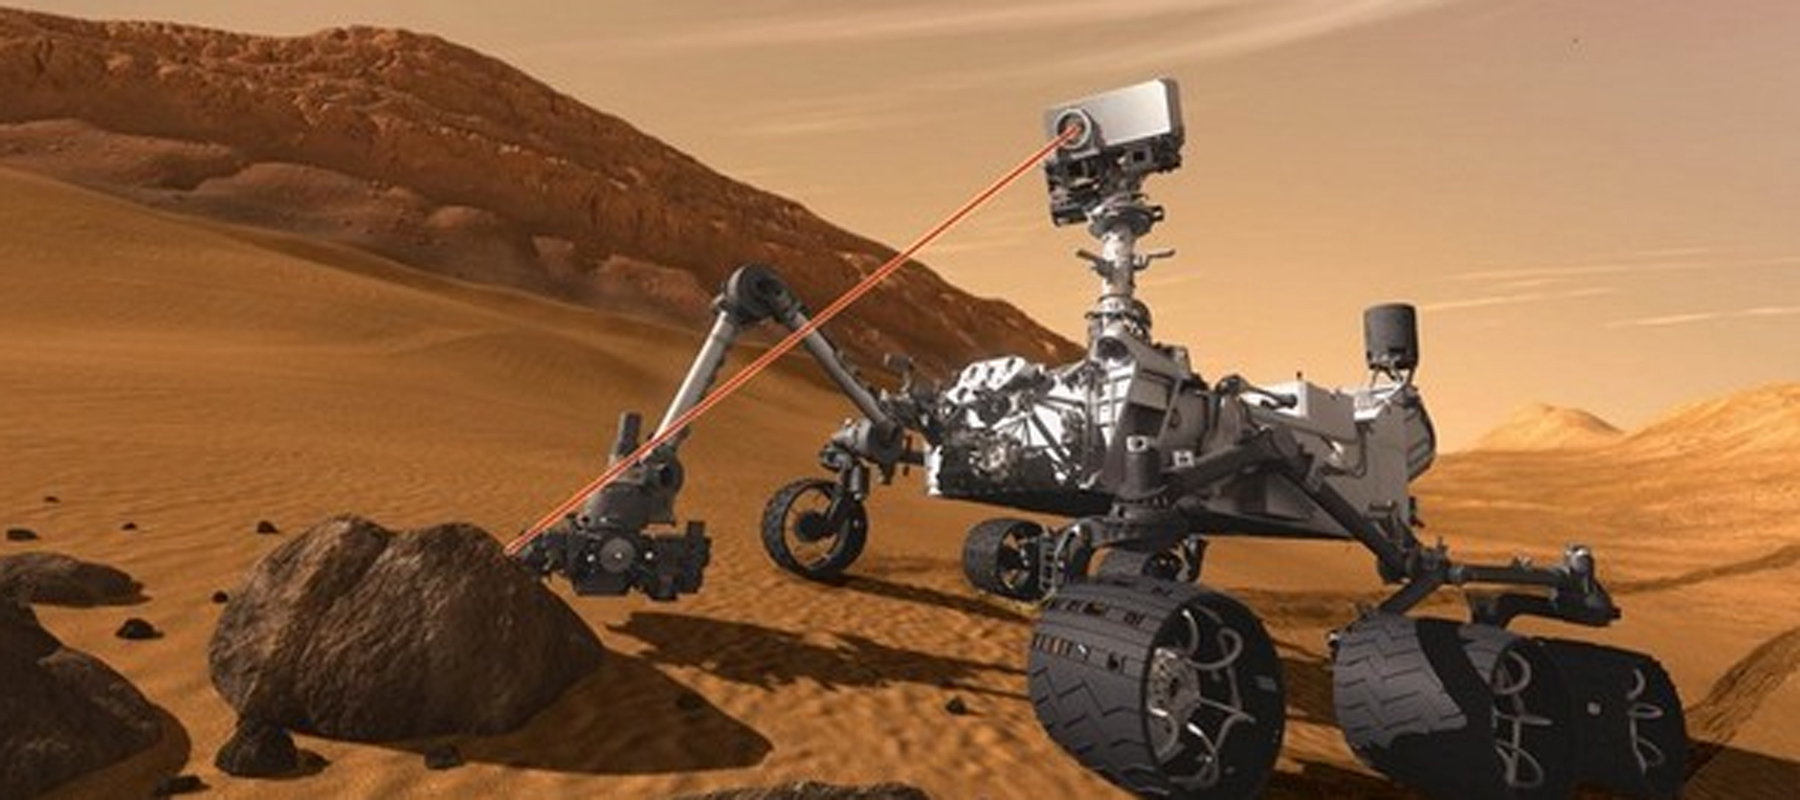 CILAS has designed and manufactured coatings on the ChemCam instrument on Curiosity rover